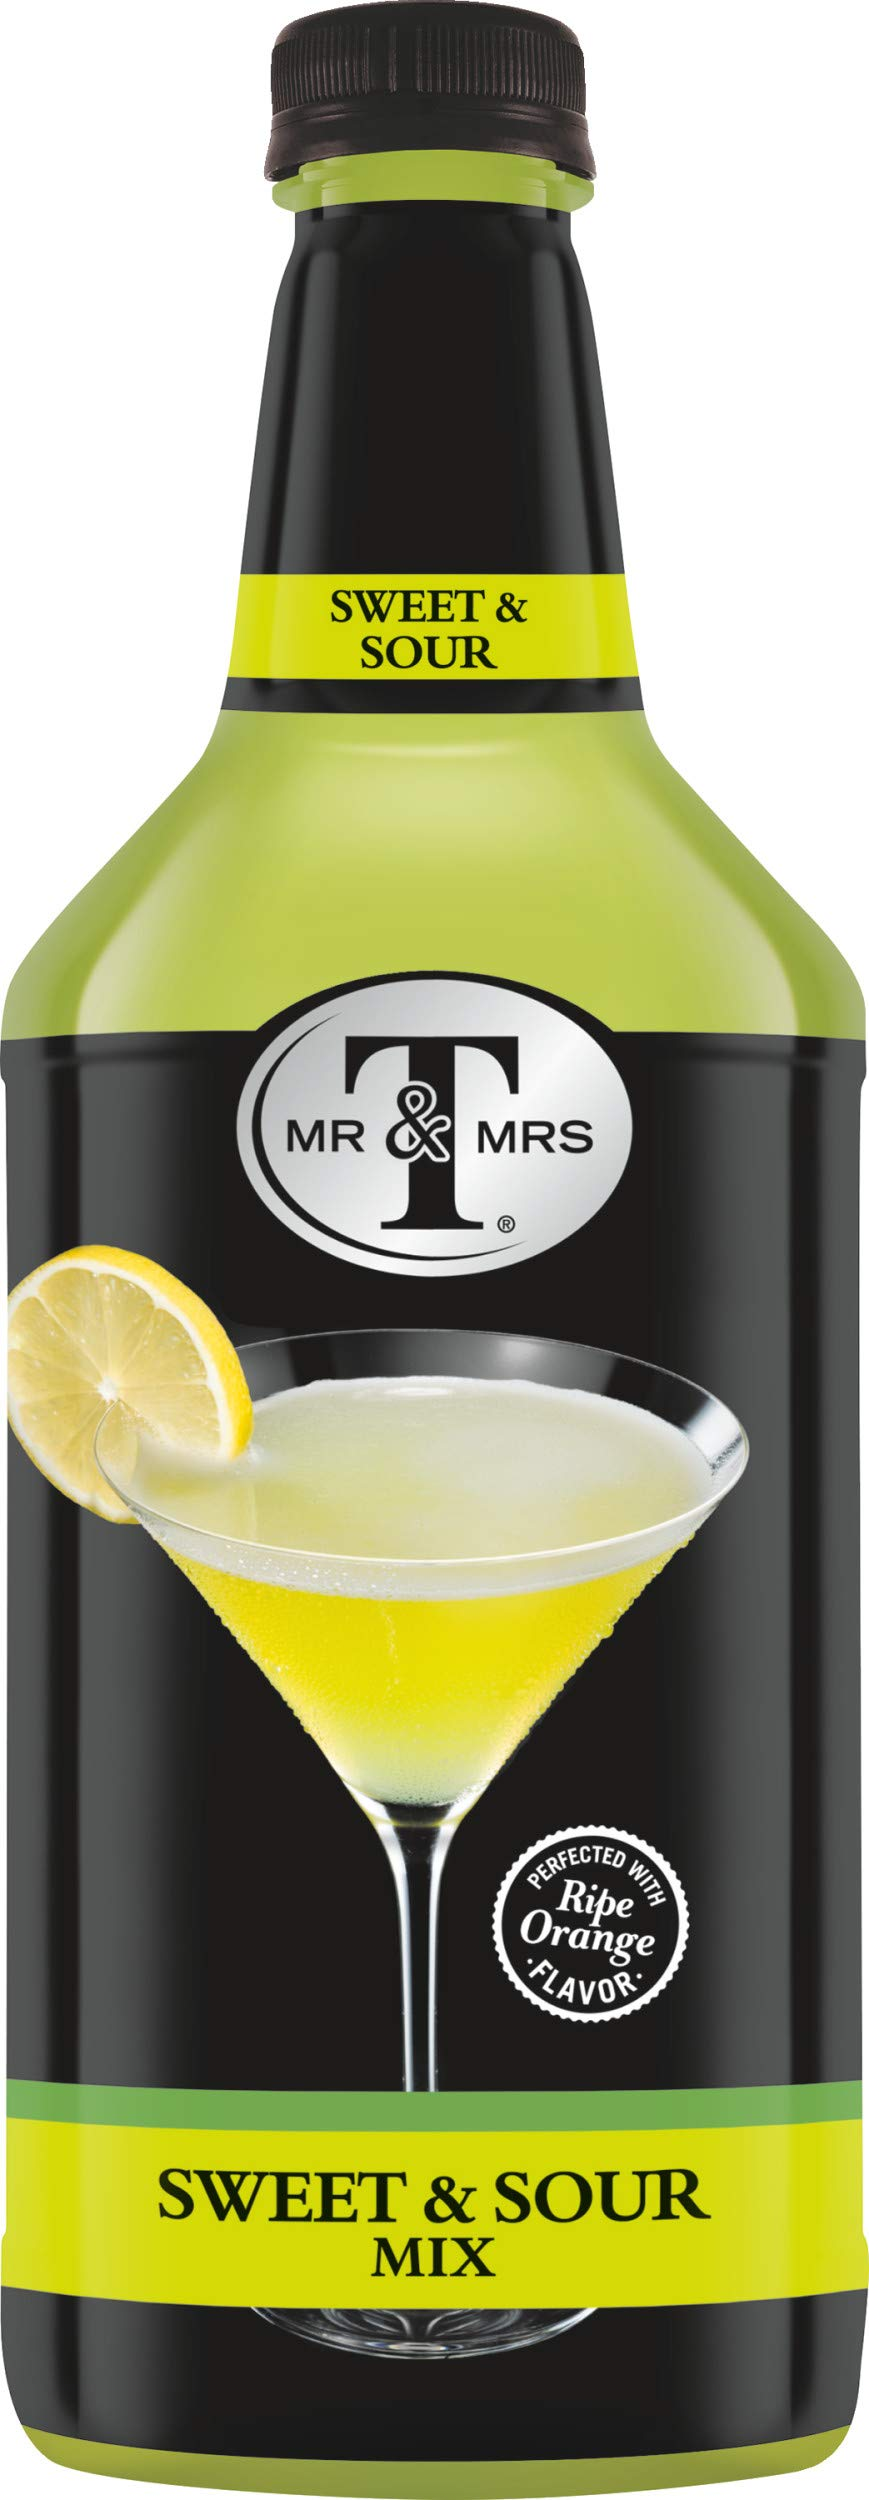 Mr & Mrs T Sweet & Sour Mix, 1.75 Liter Bottle (Pack of 6) by Mr. & Mrs. T